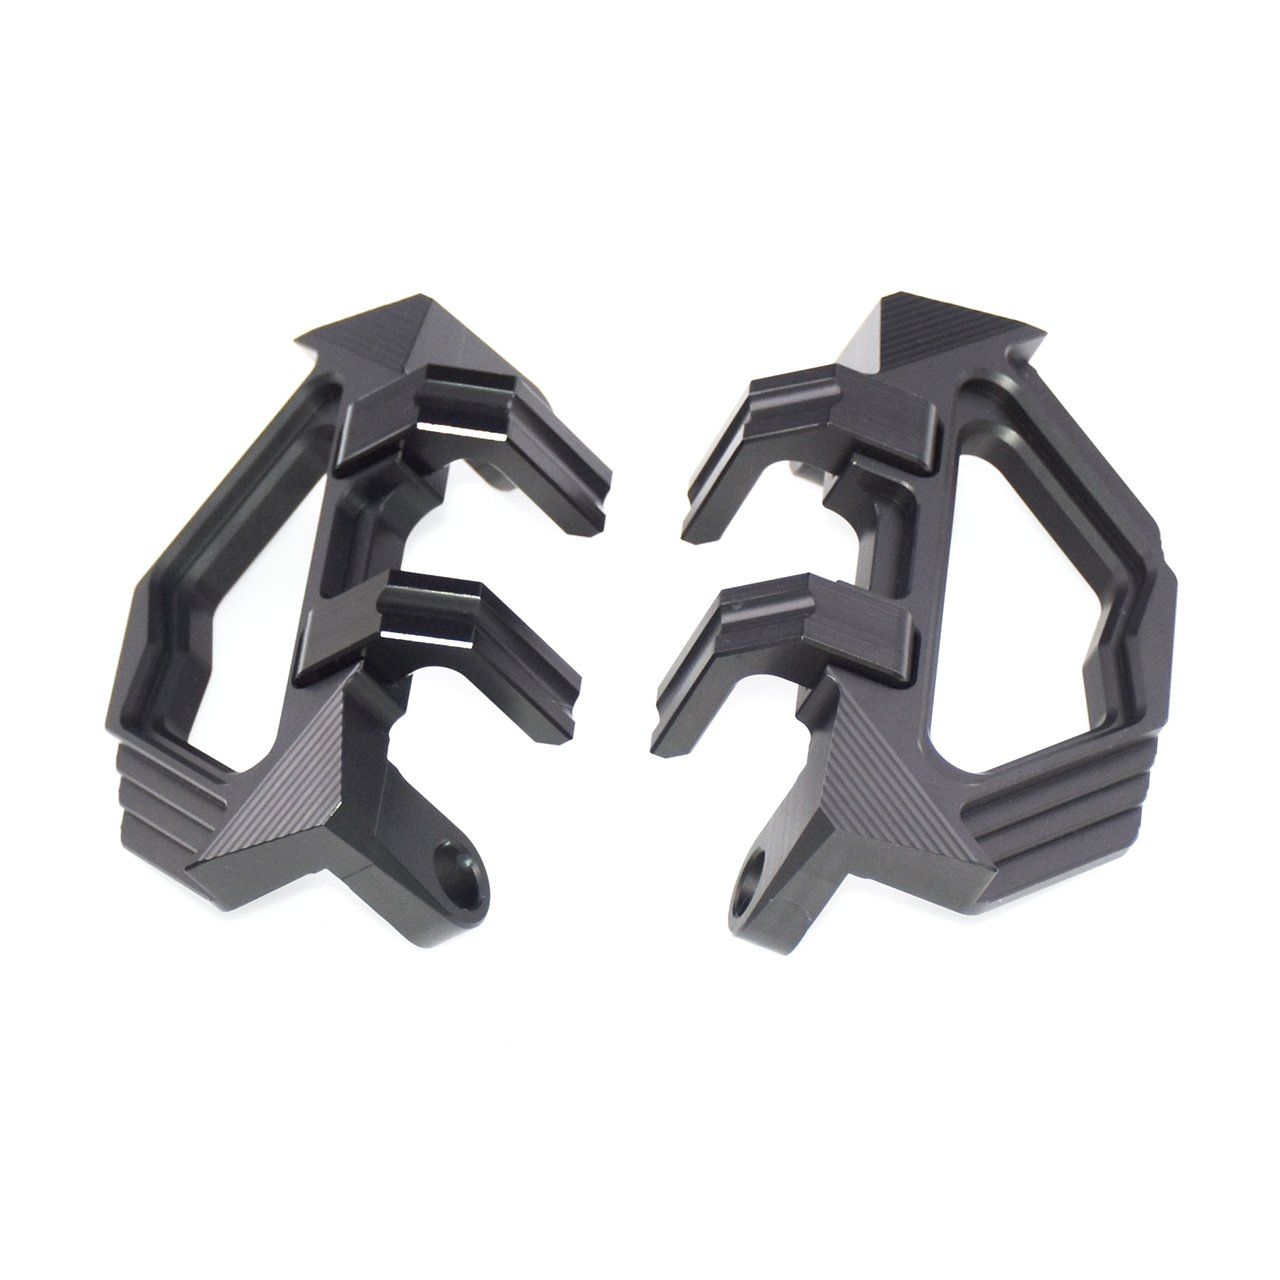 Motorcycyle Front Right & Left Brake Caliper Cover Guard For R1200GS LC/Adv 13-16, R1200R R1200RS S1000XR 15-16,Titan